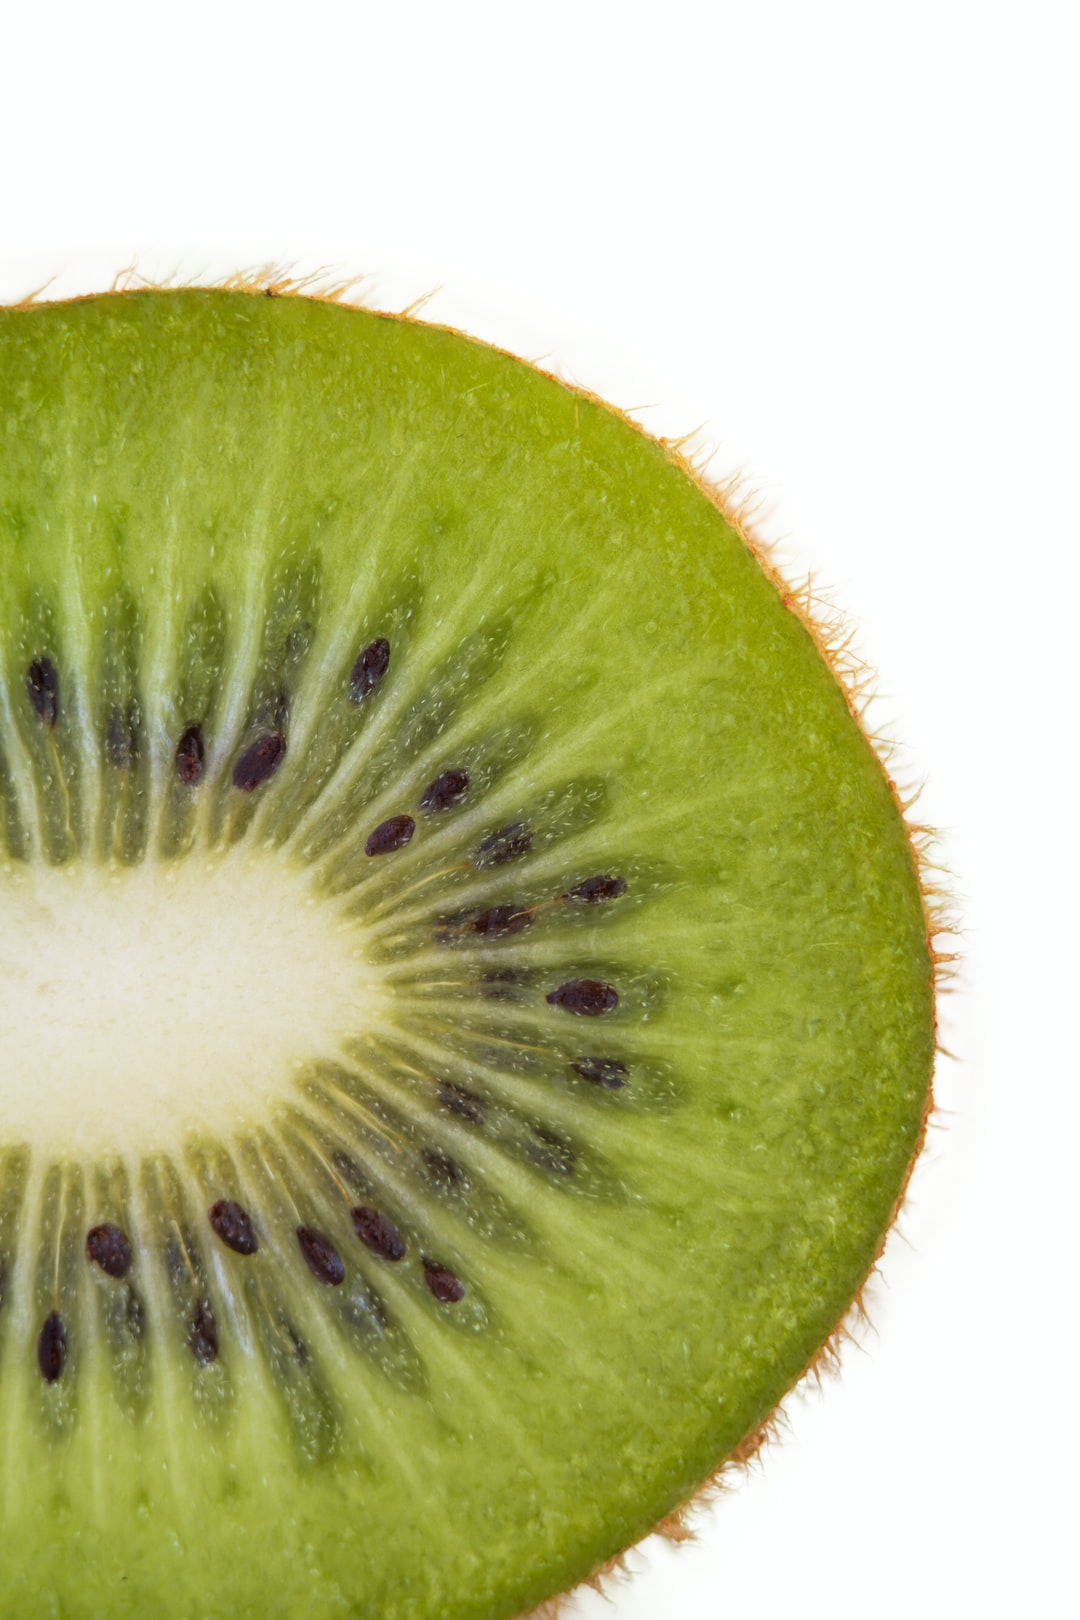 Close up on a slice of kiwi fruit 🥝 - Thanks for visiting! Donations help & motivate me to keep uploading more 📸's. Even a buck or two helps. ➡️ https://www.buymeacoffee.com/uniqueton Found my photos useful? feel free to contact me about anything at email: uniquetonshots@gmail.com IG: @uniquetonshots